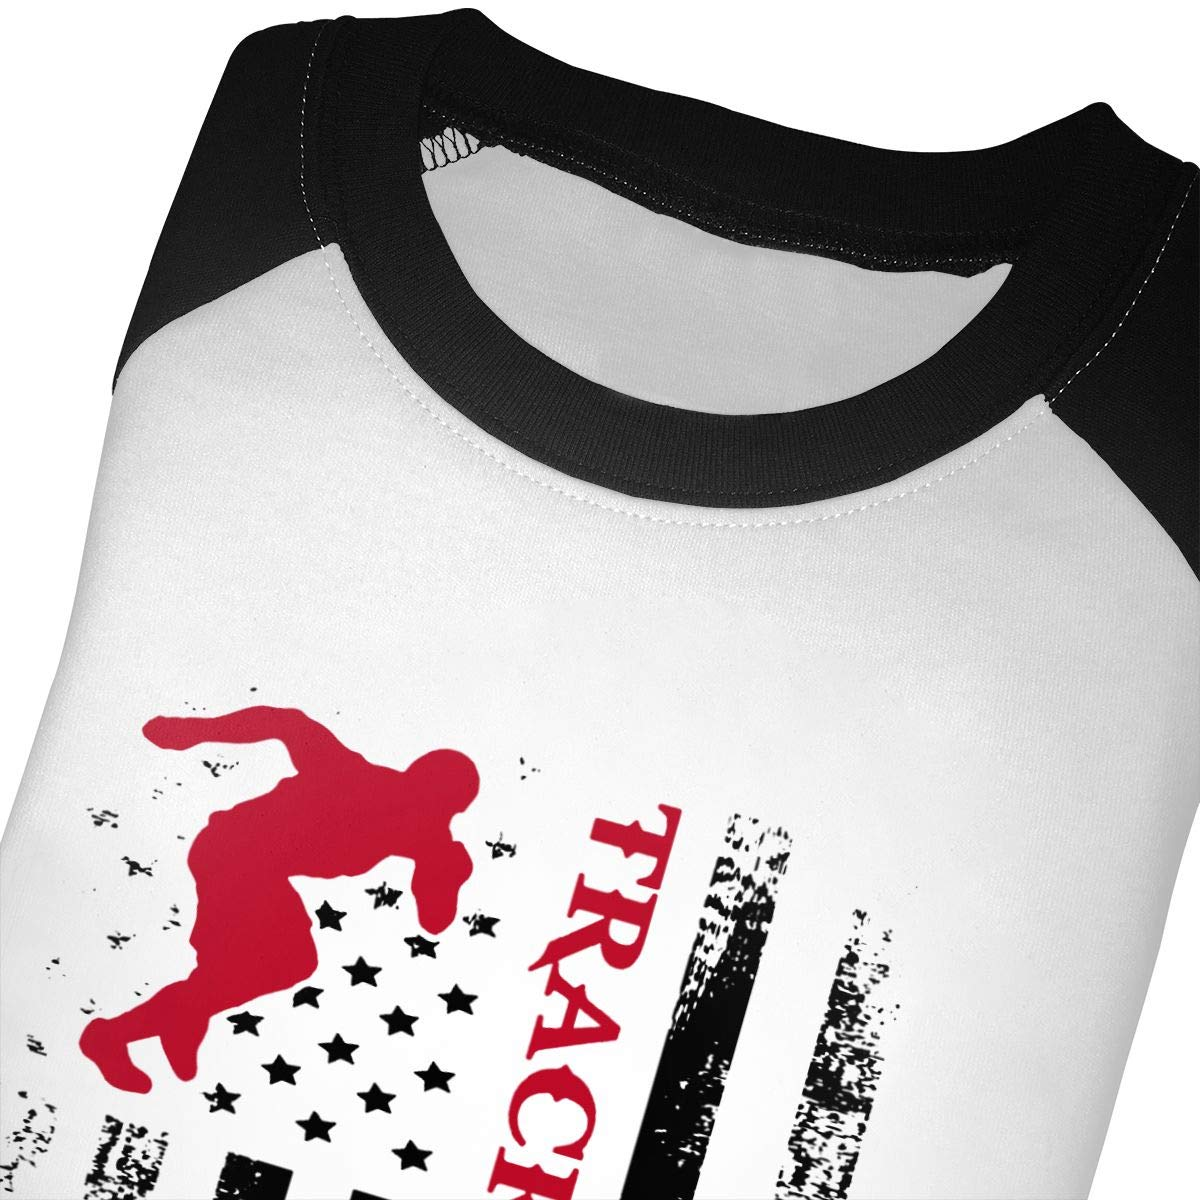 QPKMRTZTX0 Boys Girls Kids /& Toddler American Flag Track and Field Long Sleeve Tees 100/% Cotton